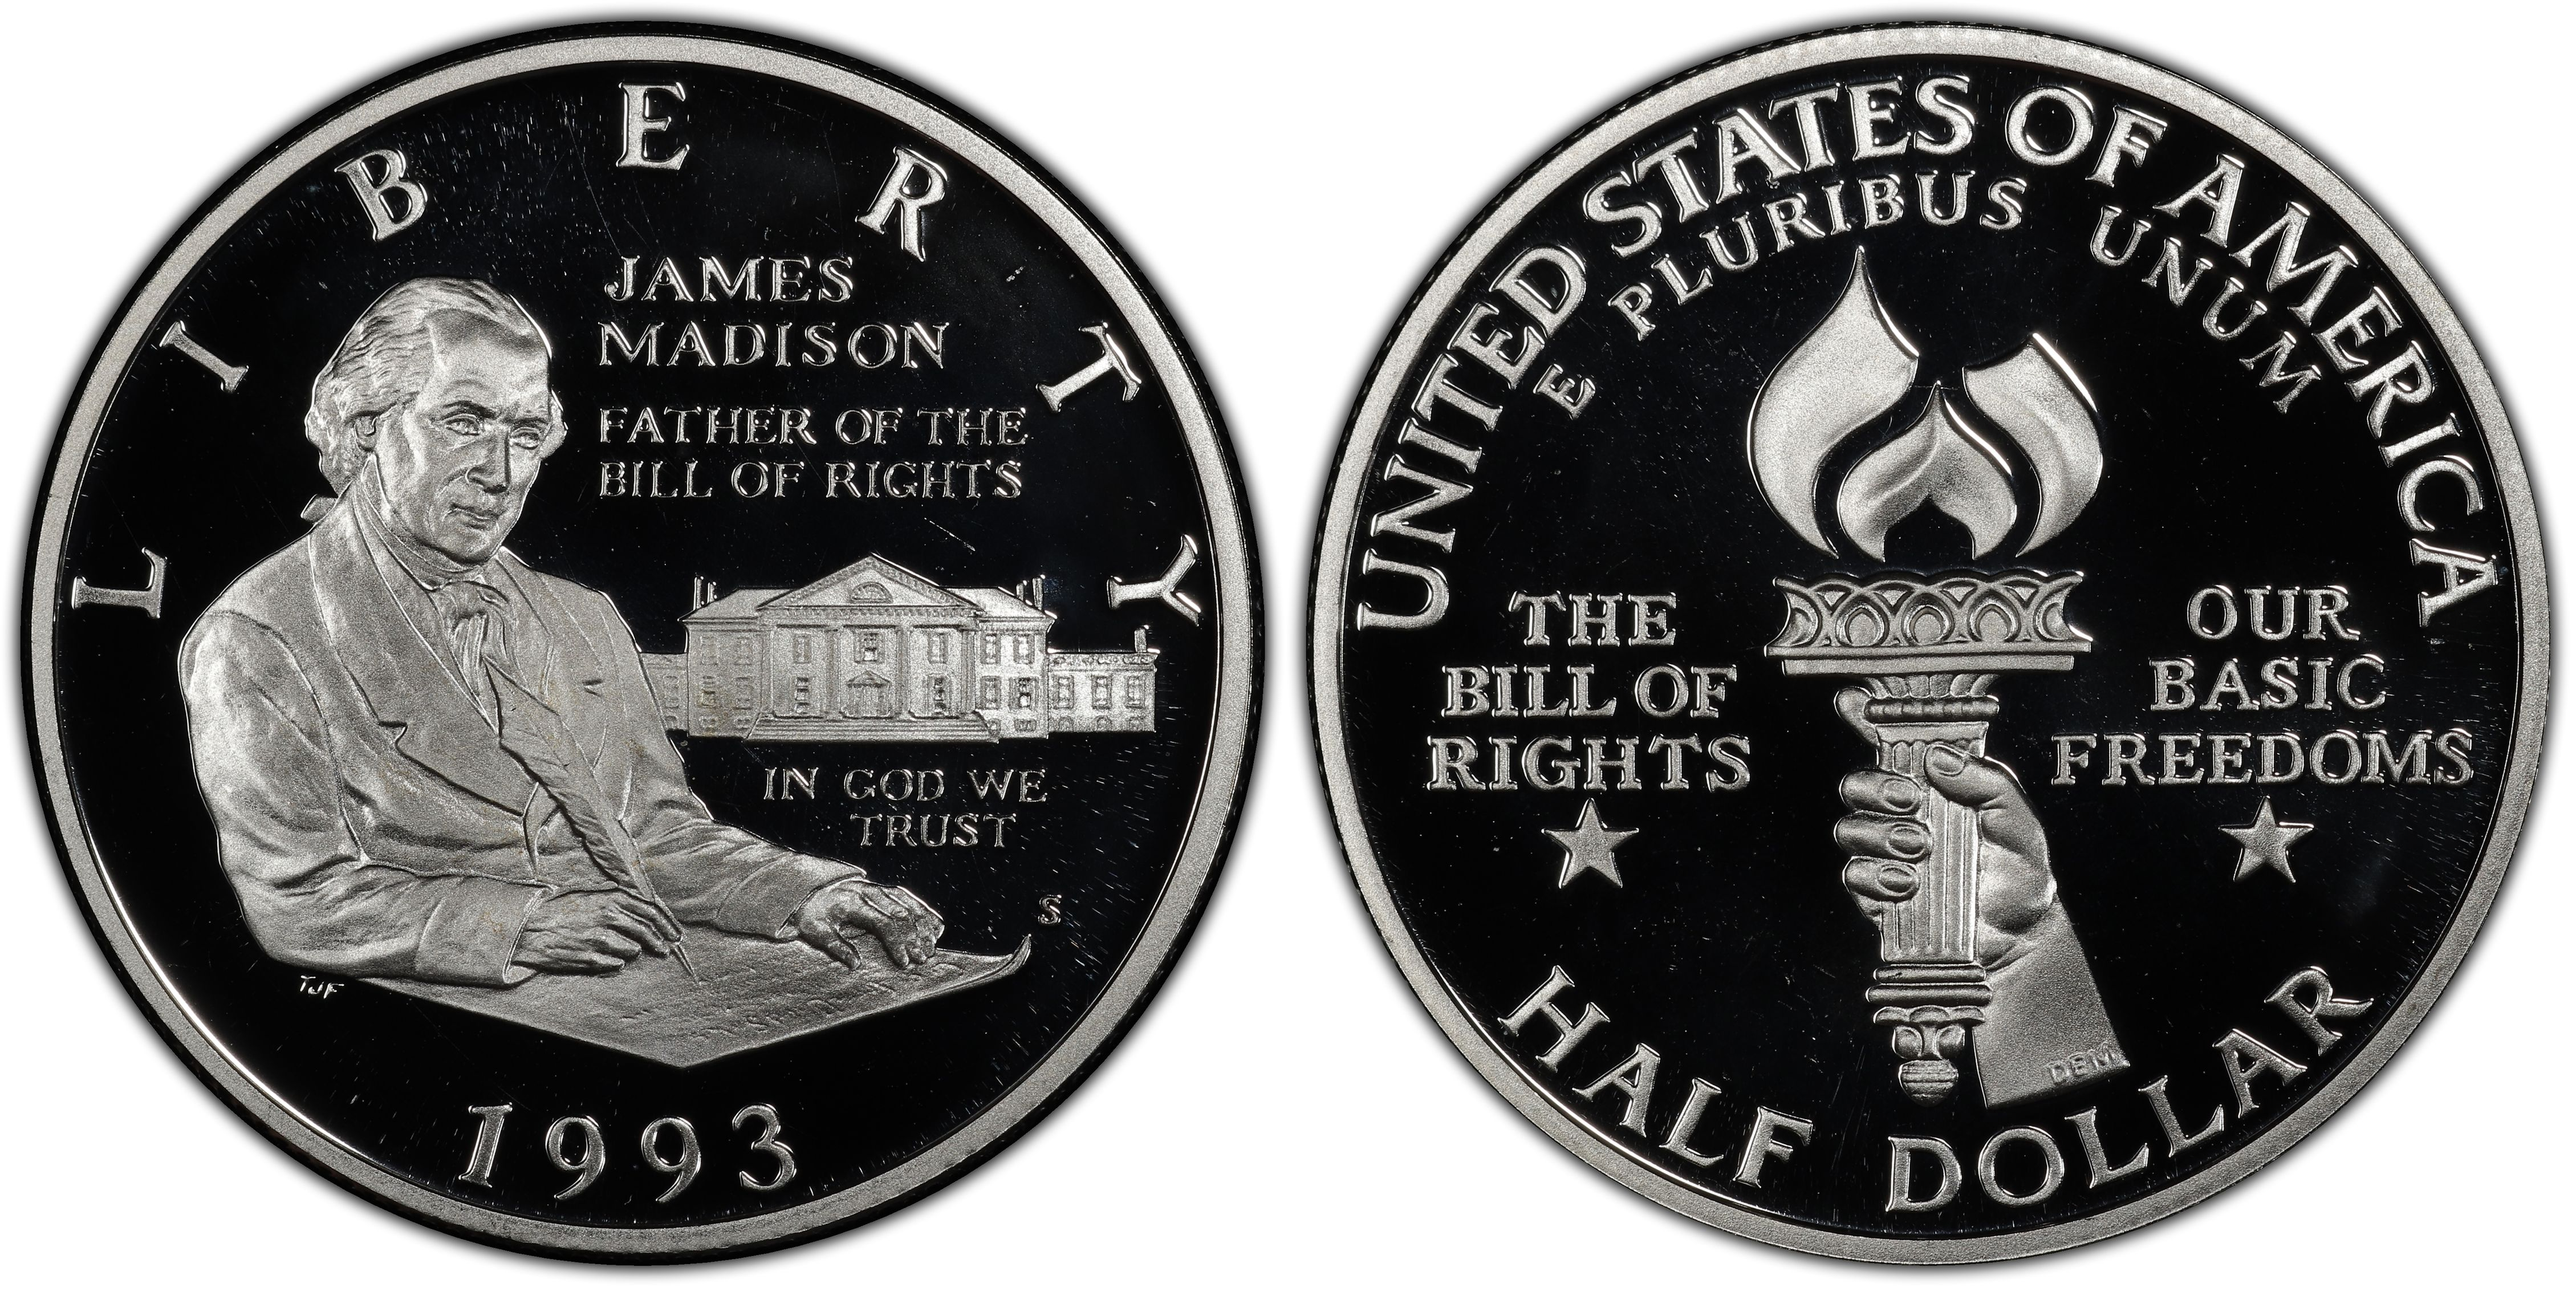 1993 S PROOF Madison Bill of Rights Commemorative Silver Half Dollar US Coin